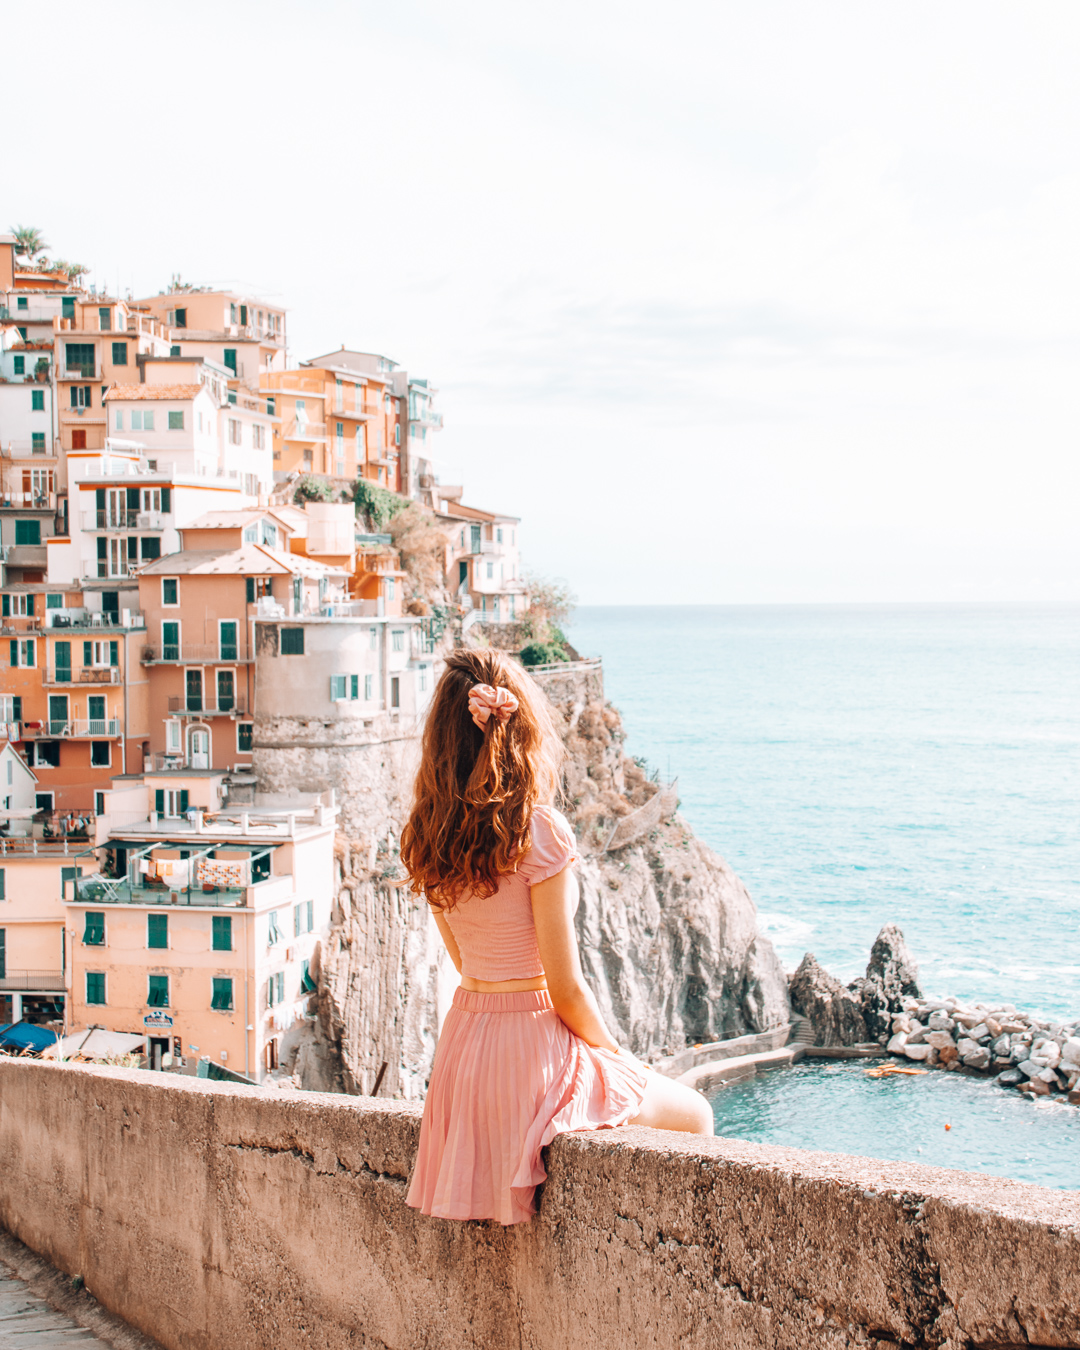 Railing, colourful houses and a girl in Manarola